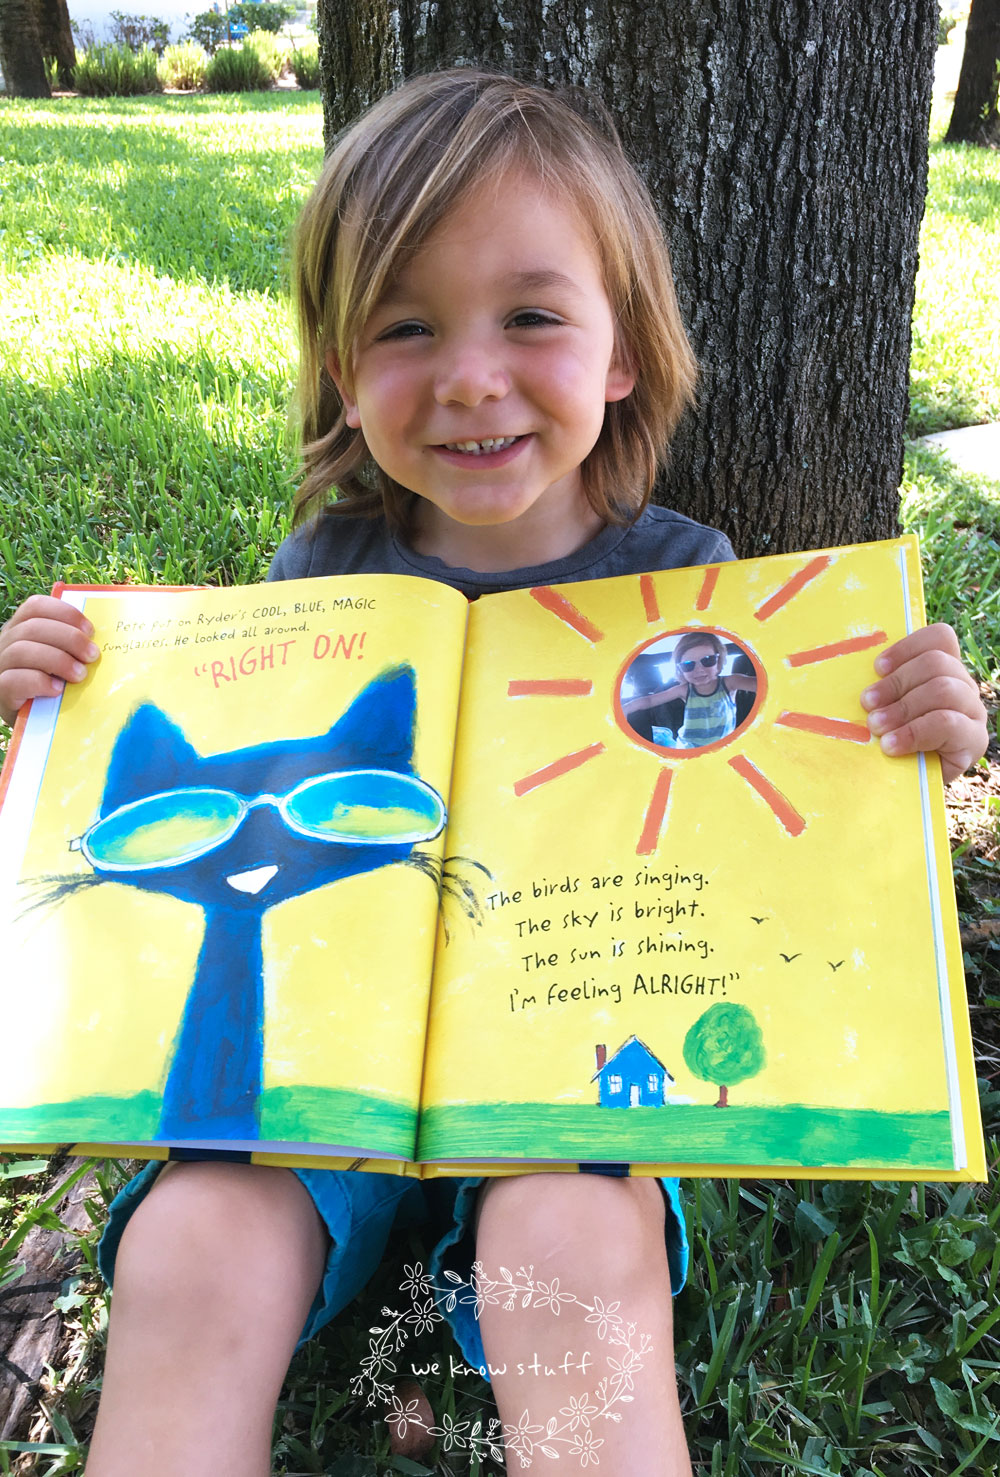 Let Your Child Be The Star! Put Me In The Story creates personalized books for kids using bestselling children's picture books and well-loved characters.